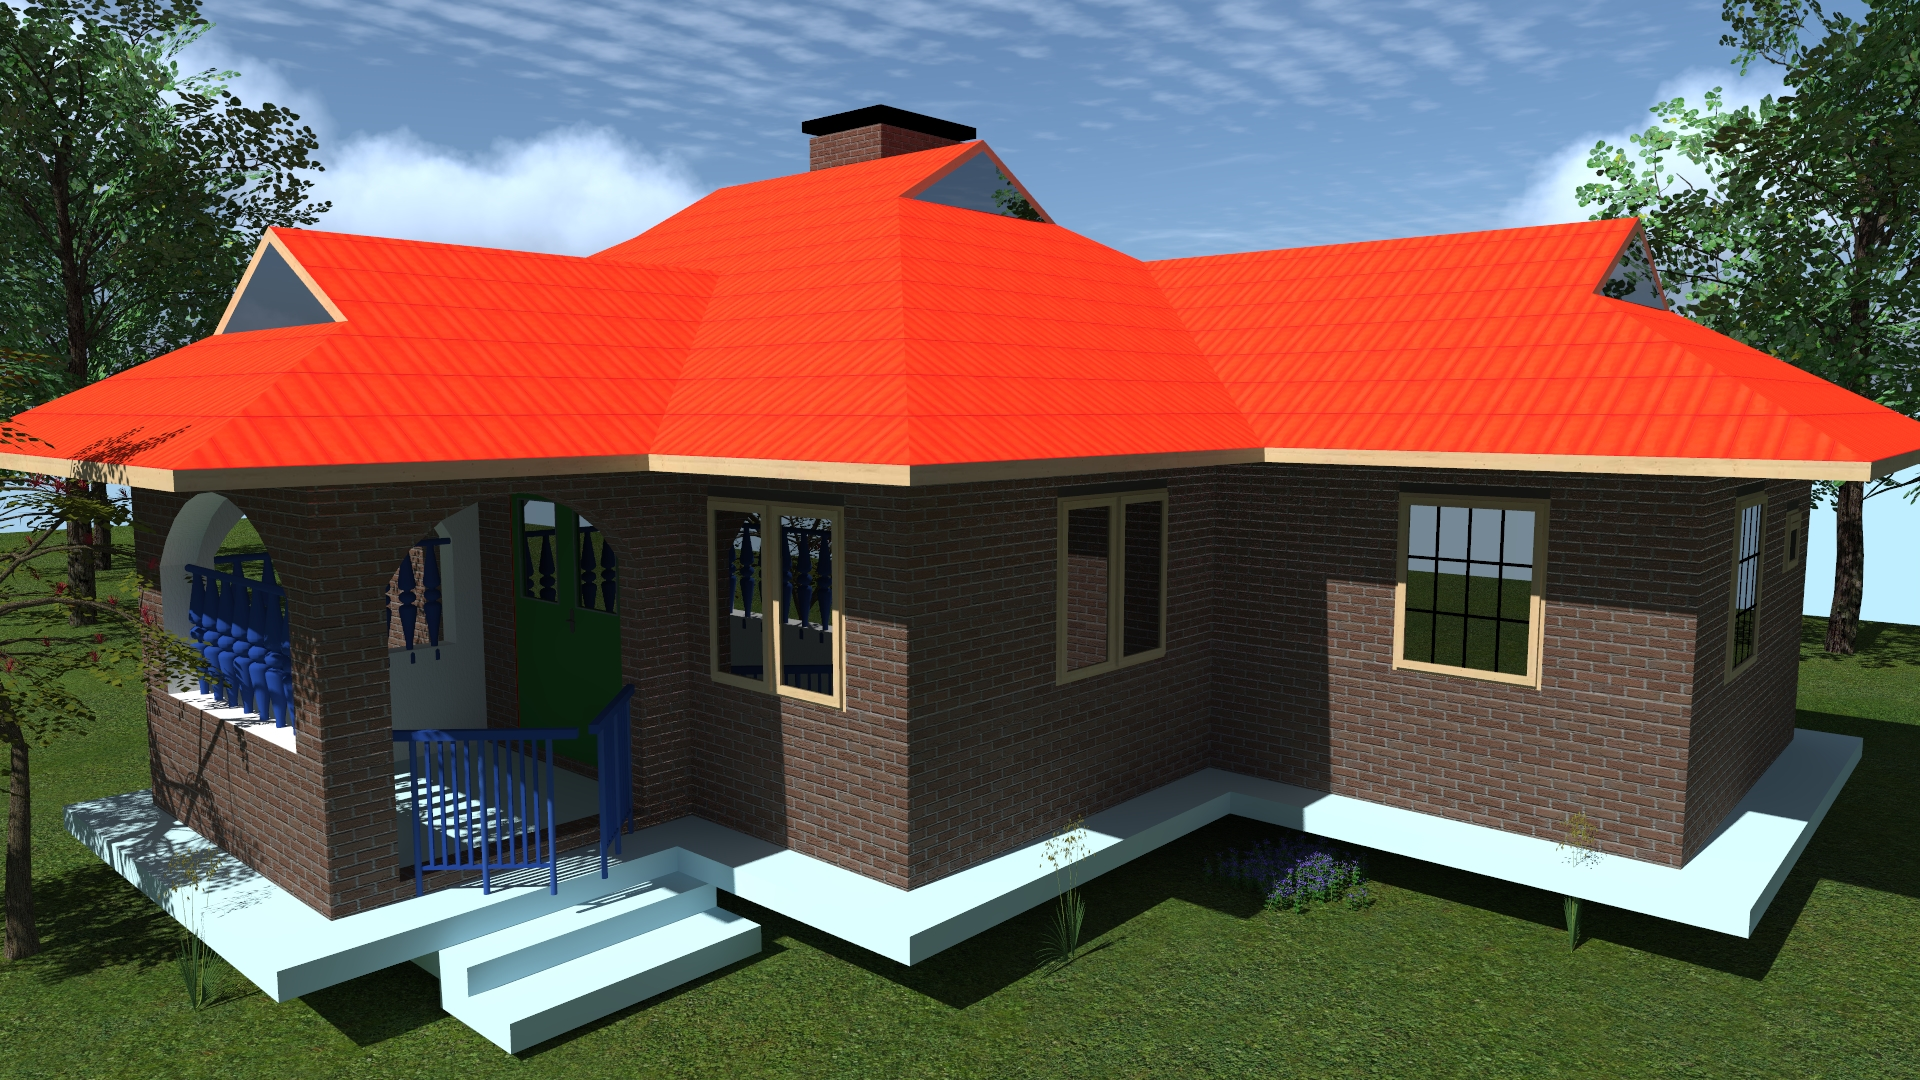 Modest and exquisite 3 bedroom house plan in kenya muthurwa marketplace